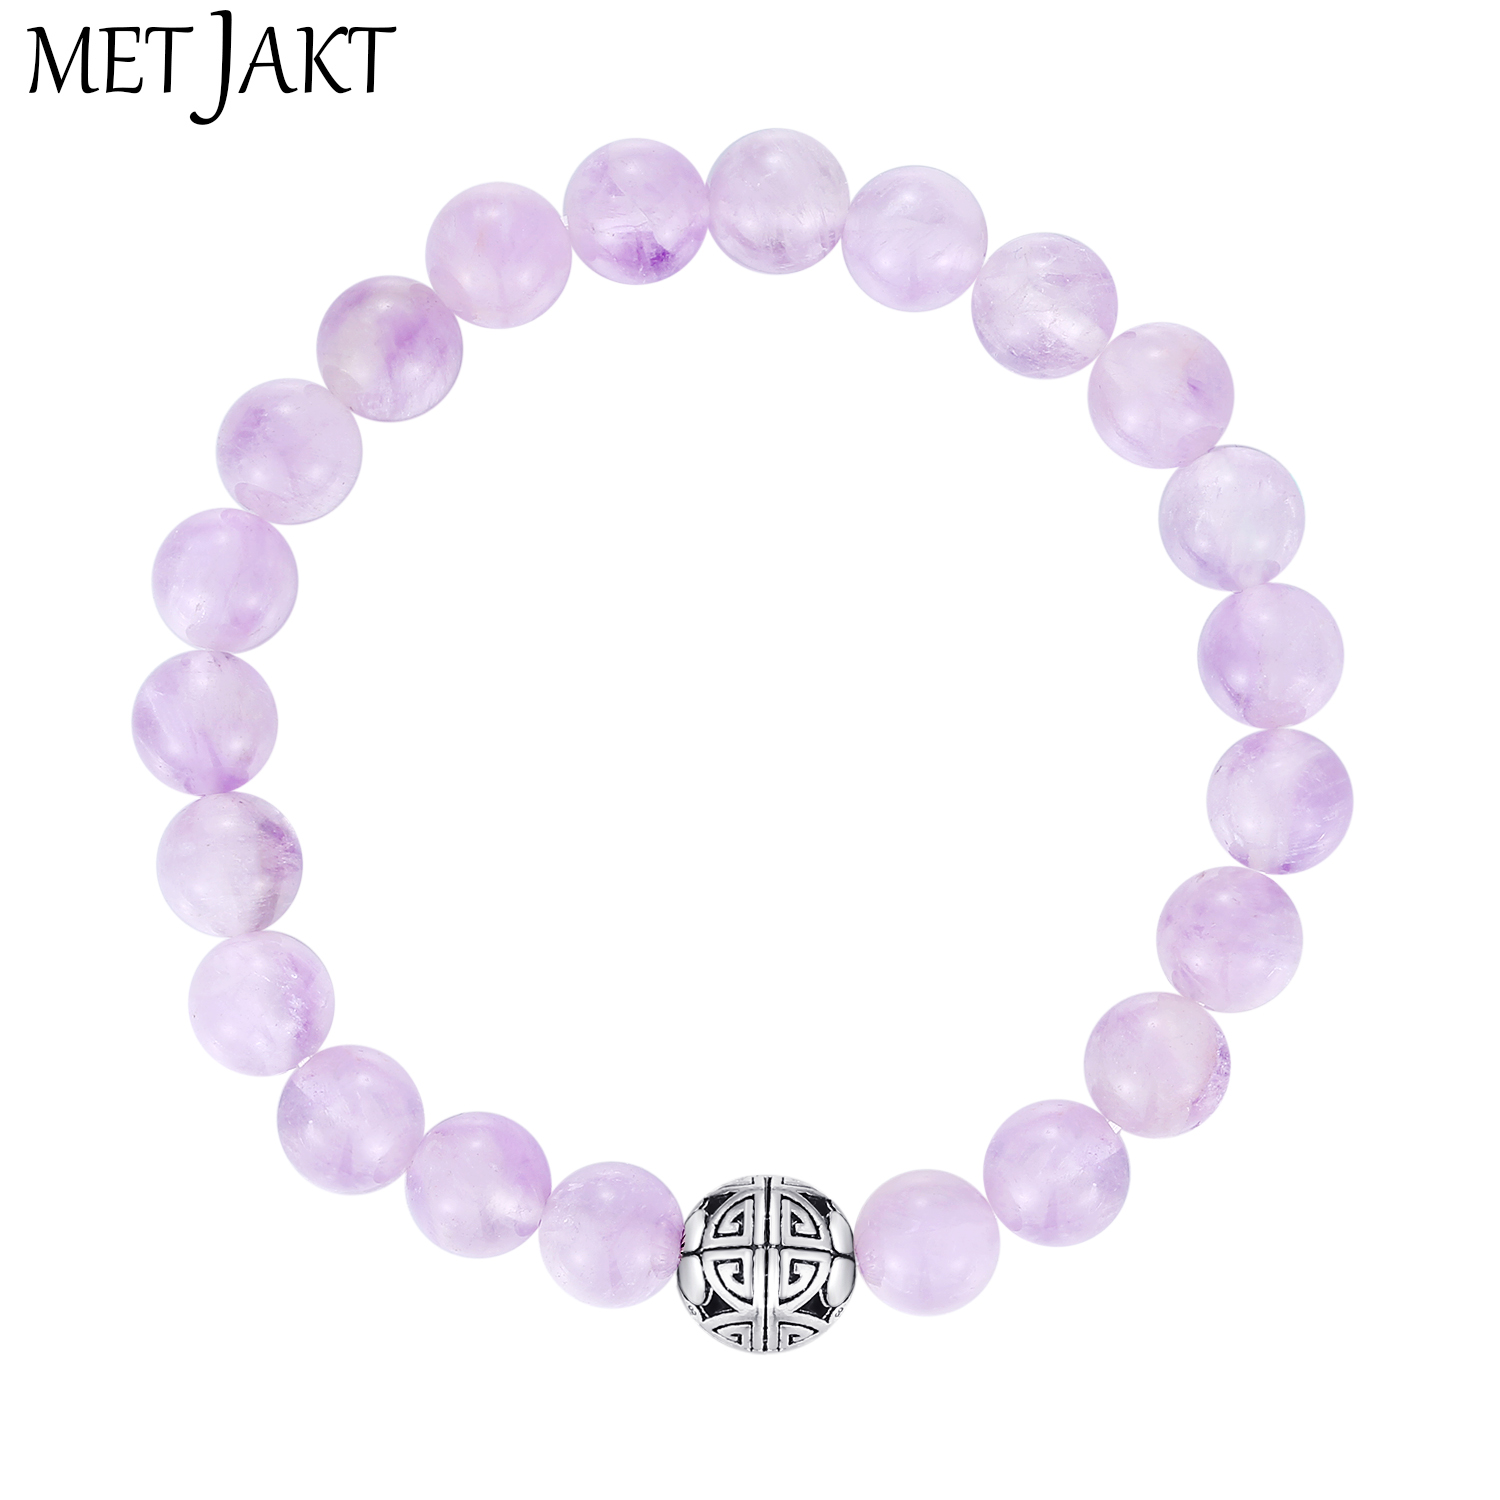 MetJakt Natural Gemstone 8mm Brazilian Amethyst Bracelet Solid 925 Sterling Silver Long Life Beads for Womens Fine JewelryMetJakt Natural Gemstone 8mm Brazilian Amethyst Bracelet Solid 925 Sterling Silver Long Life Beads for Womens Fine Jewelry